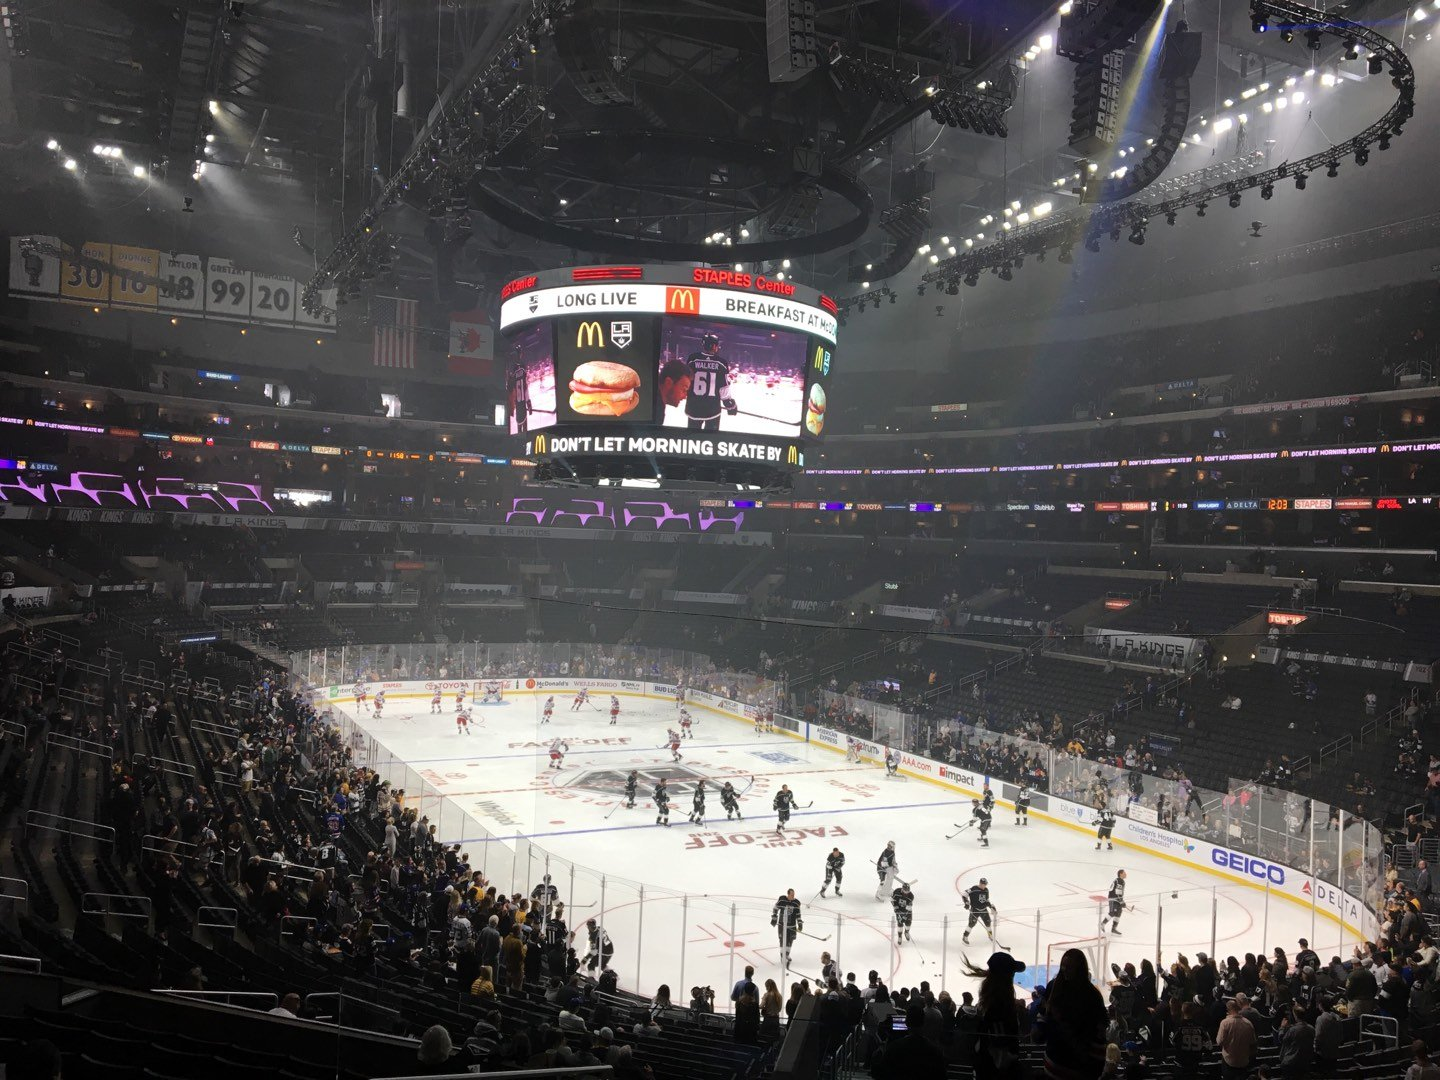 Staples Center Section 209 Row 12 Seat 22